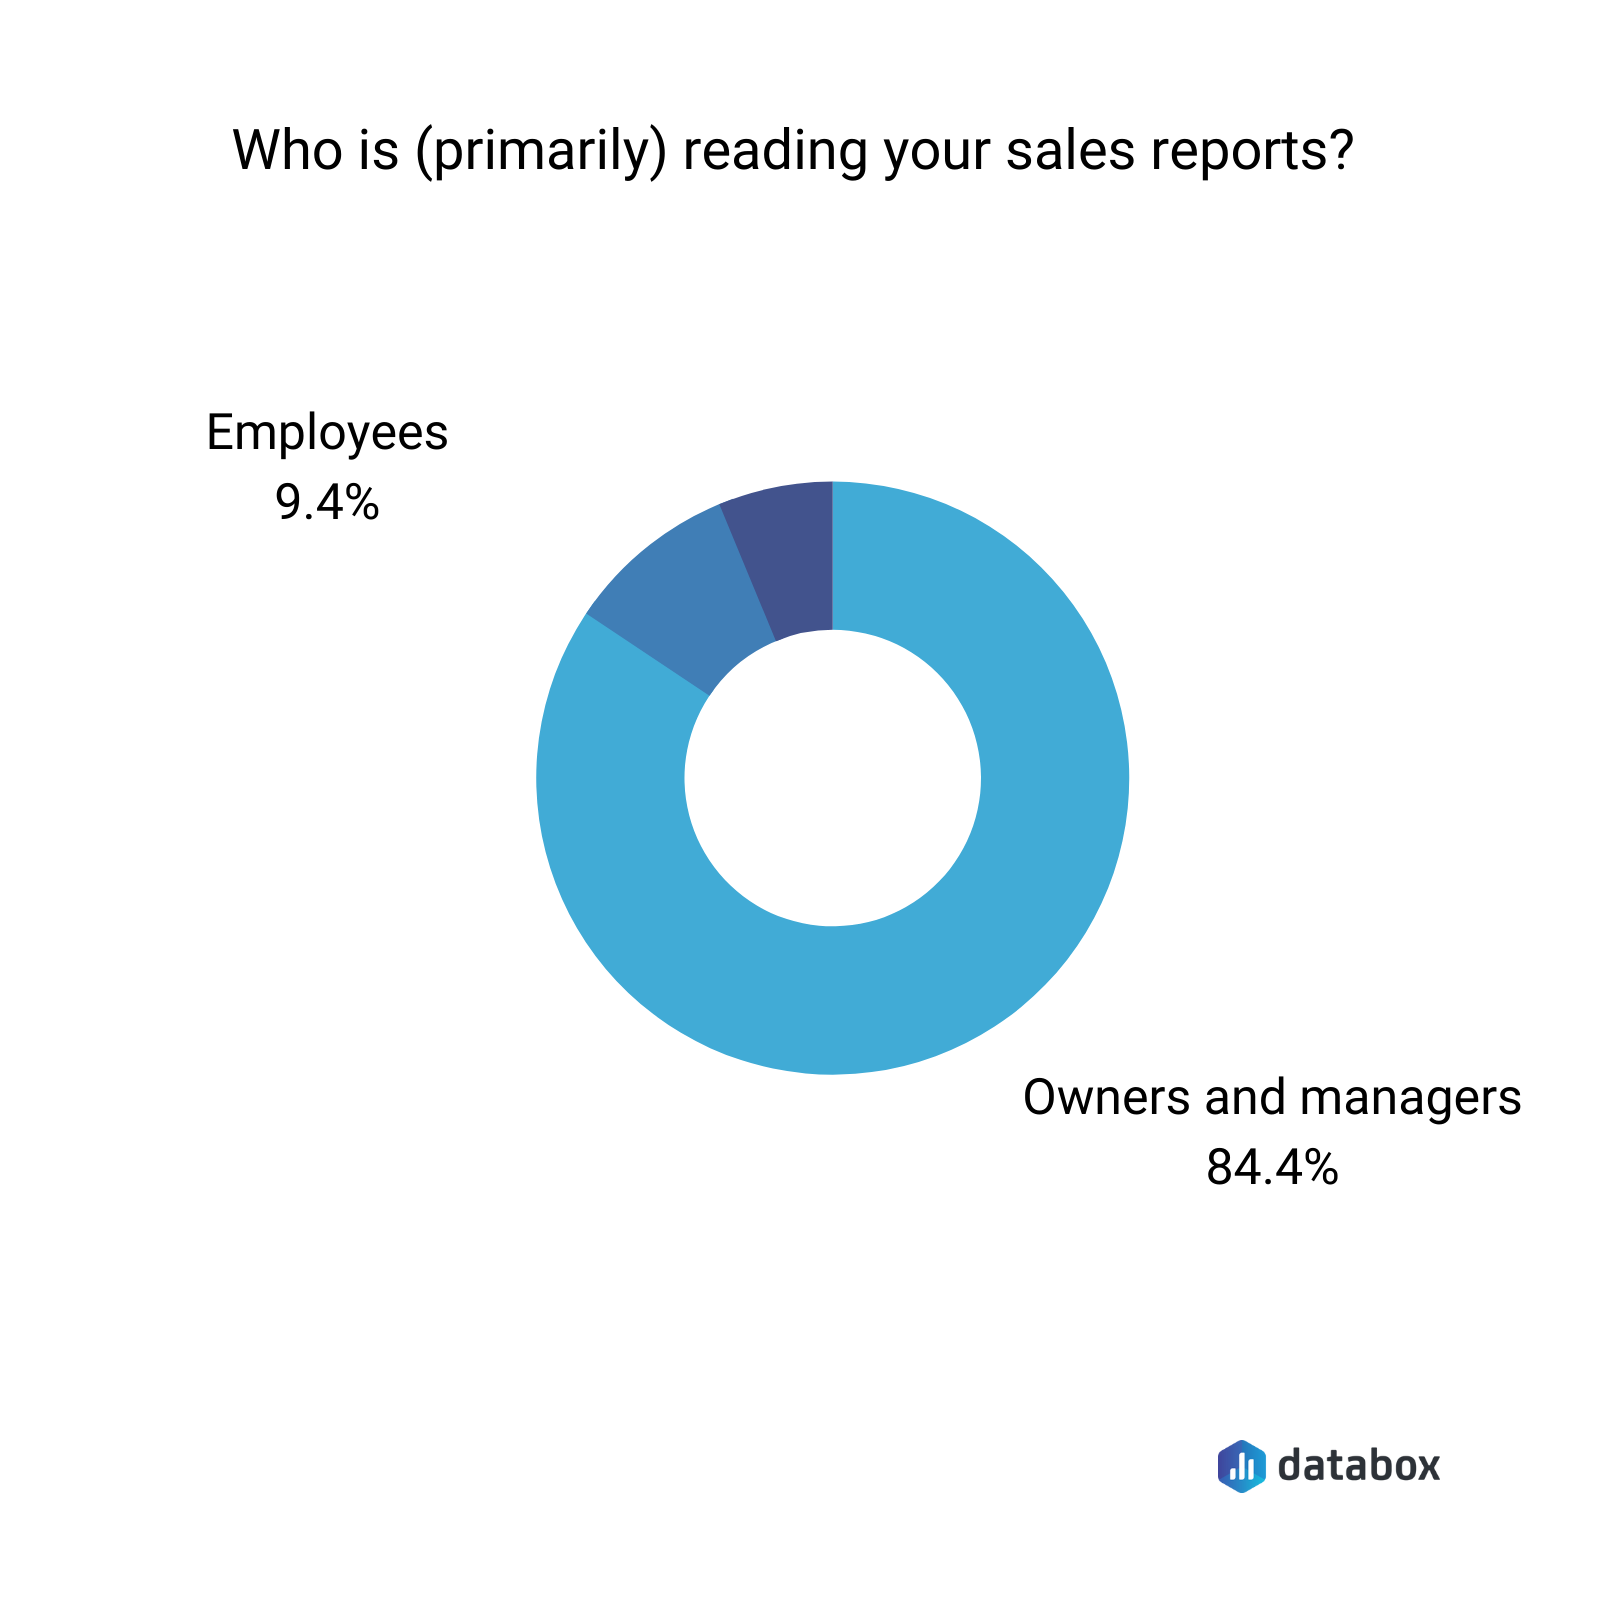 who is primarily reading your sales reports